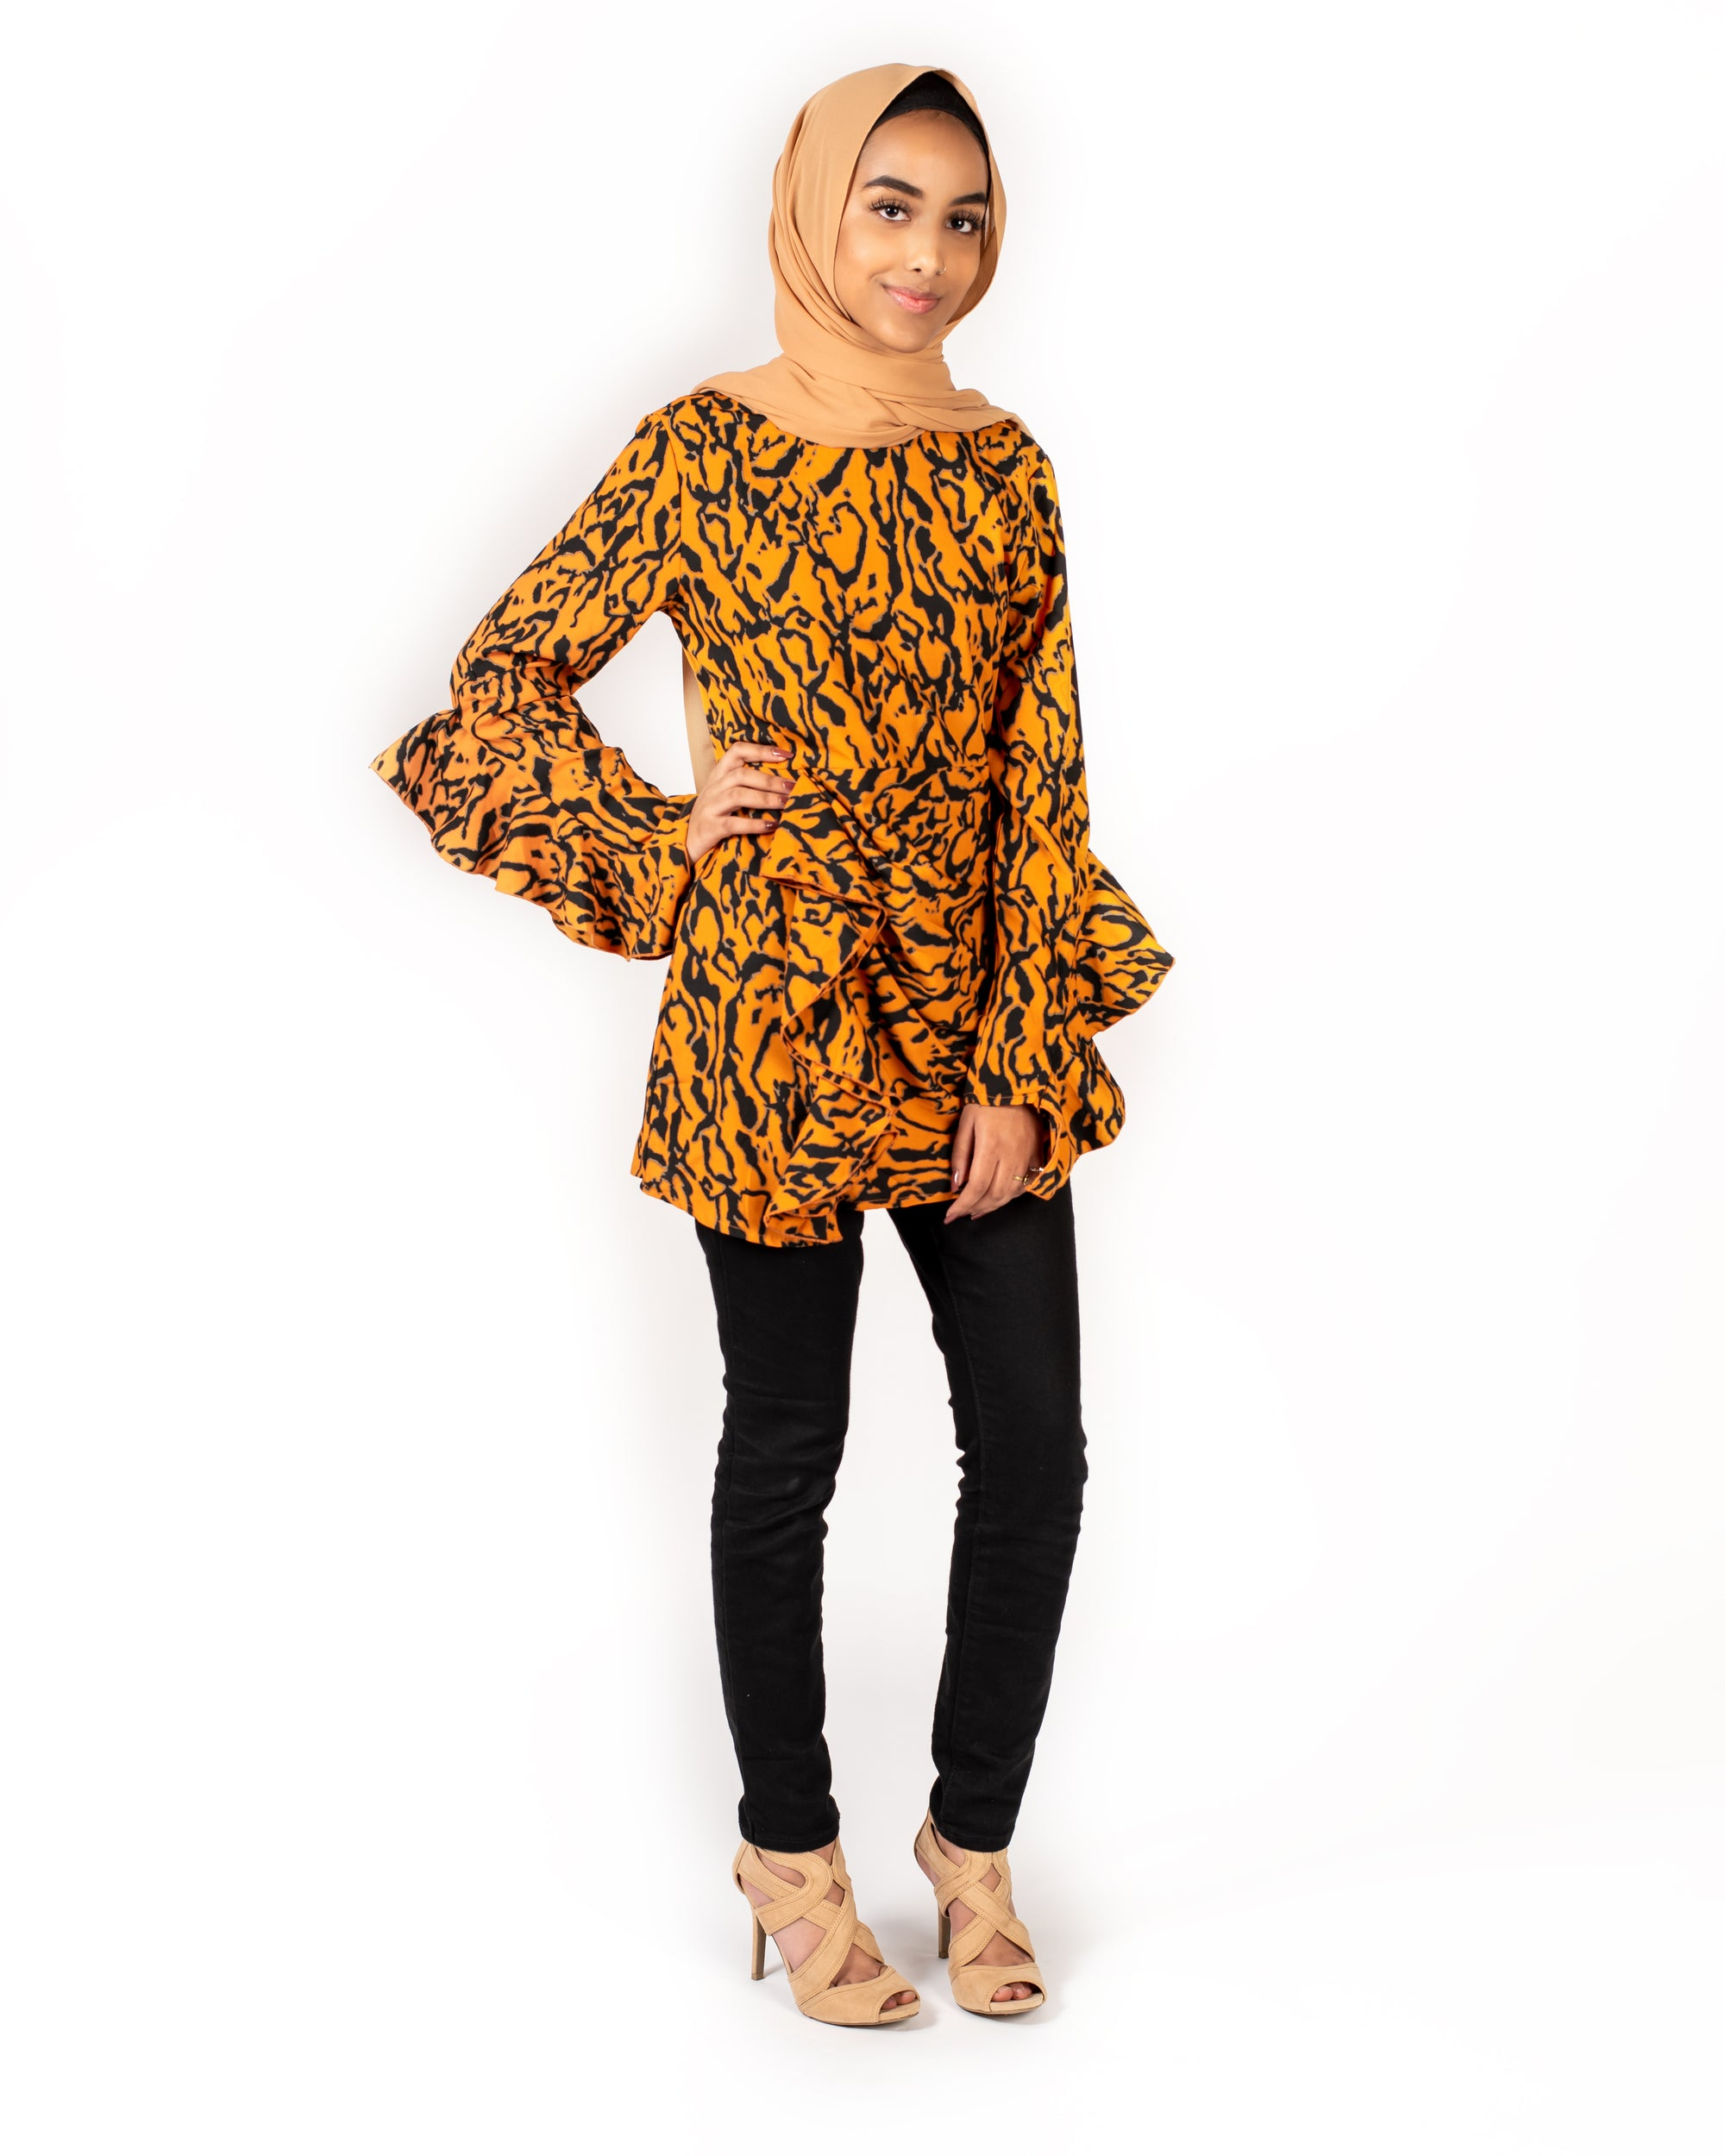 Aria Modest Ruffle Top - Tiger Print